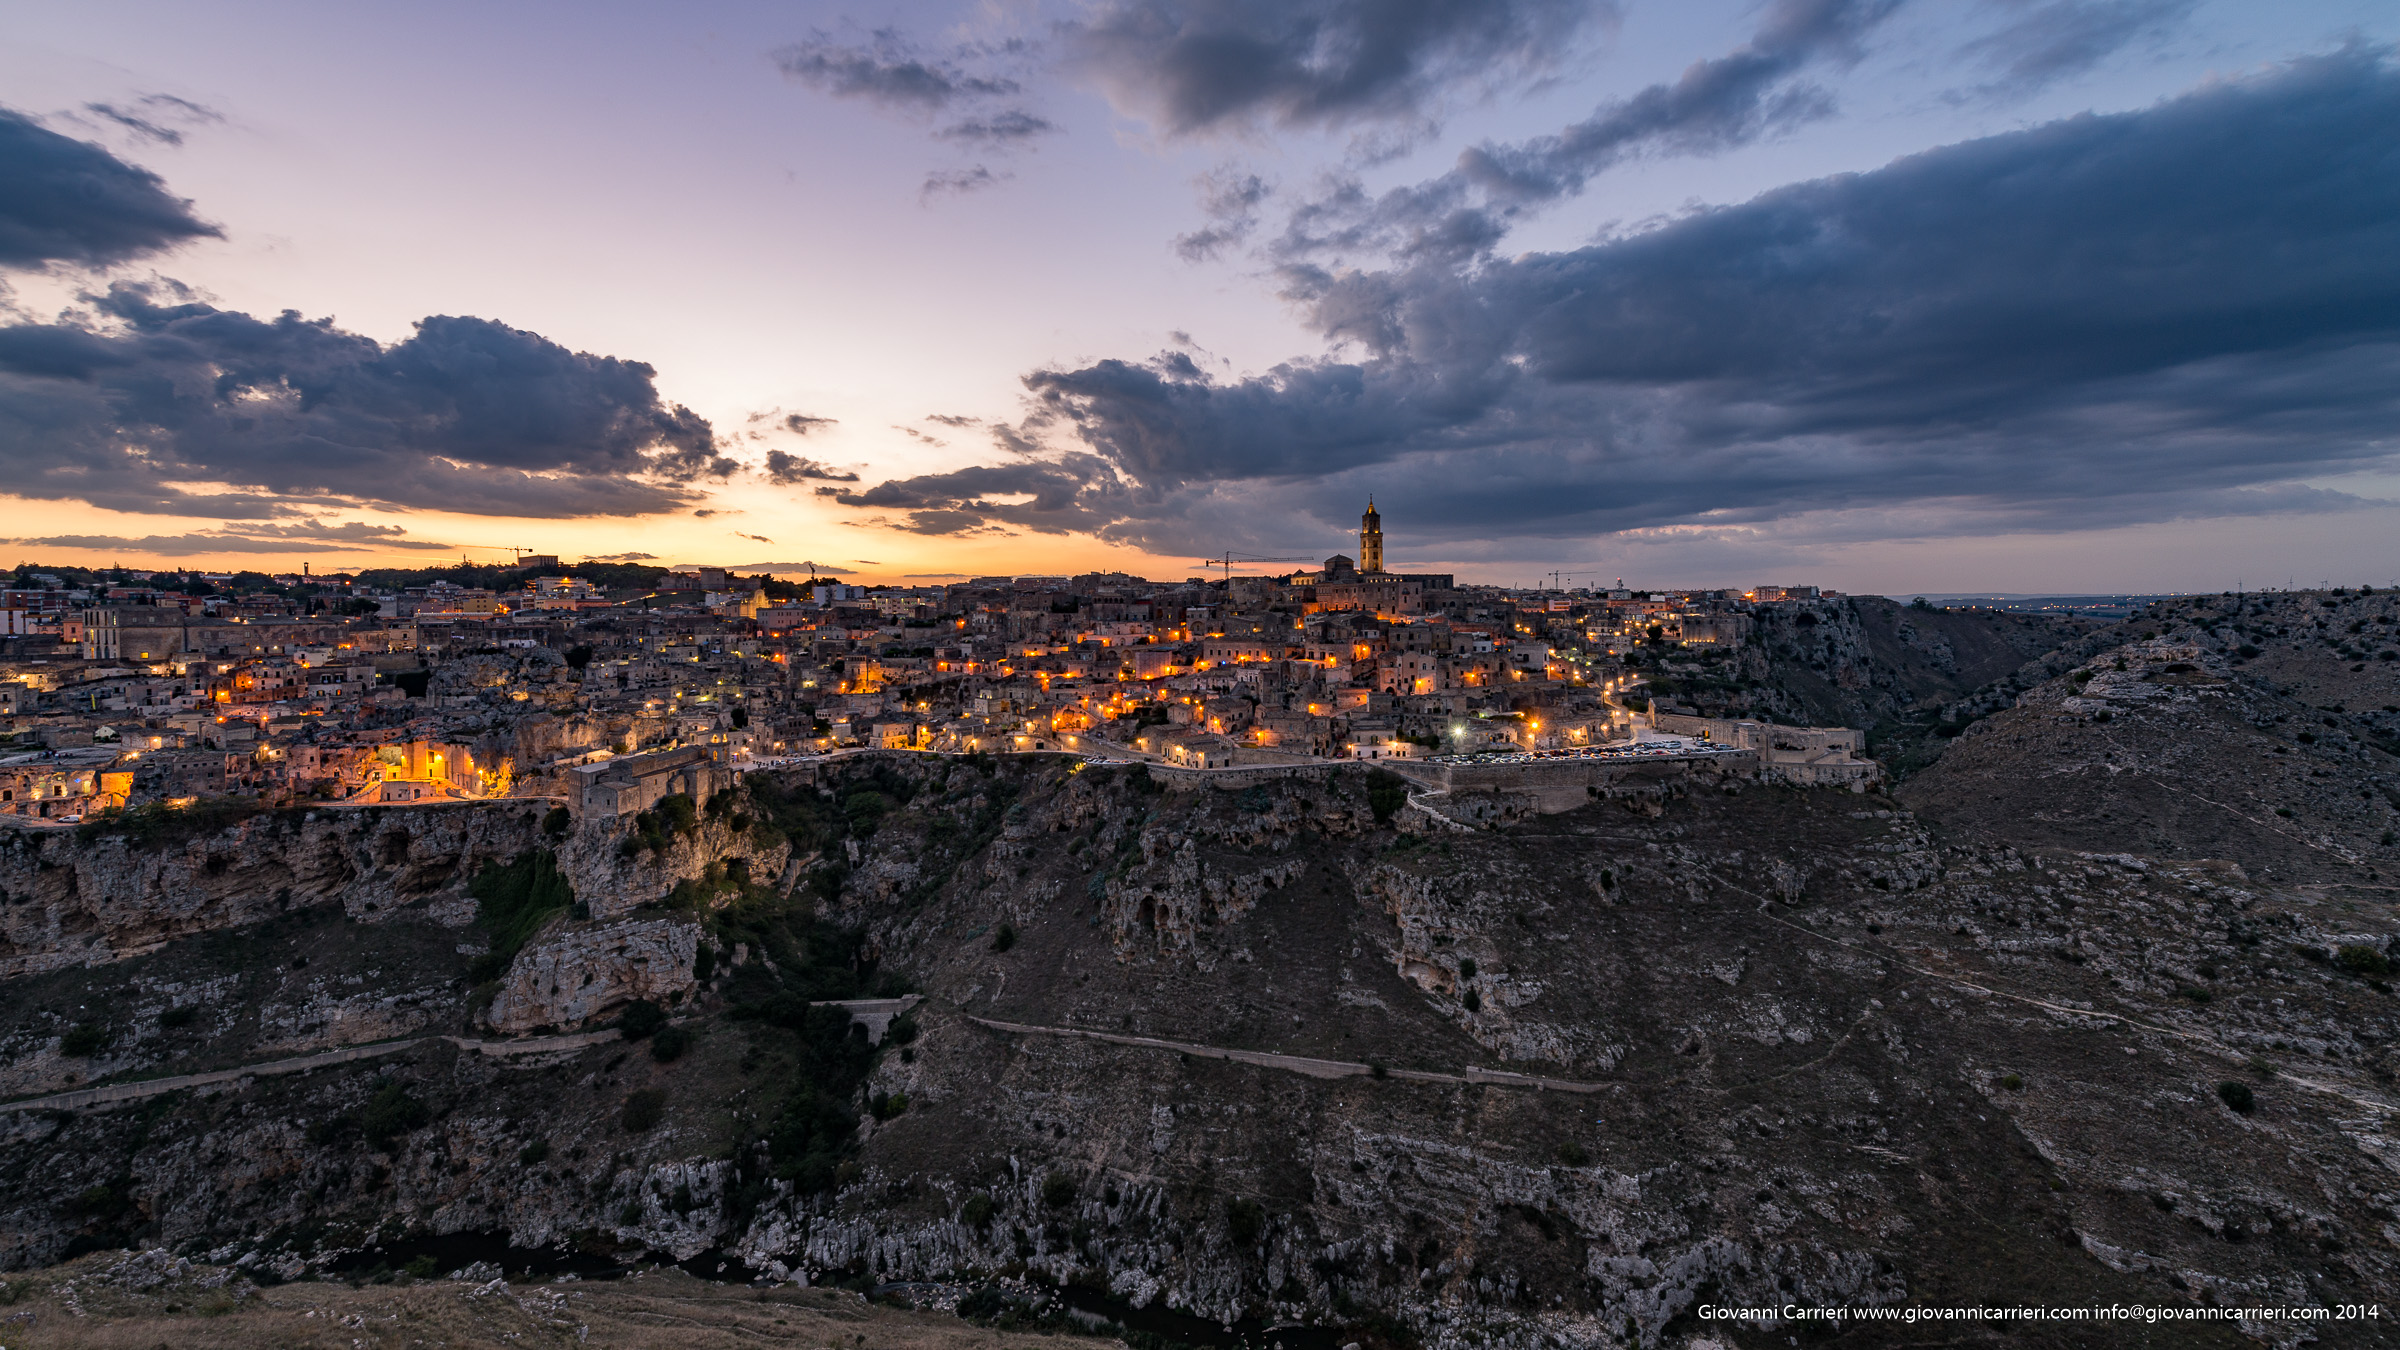 Photographs of Matera